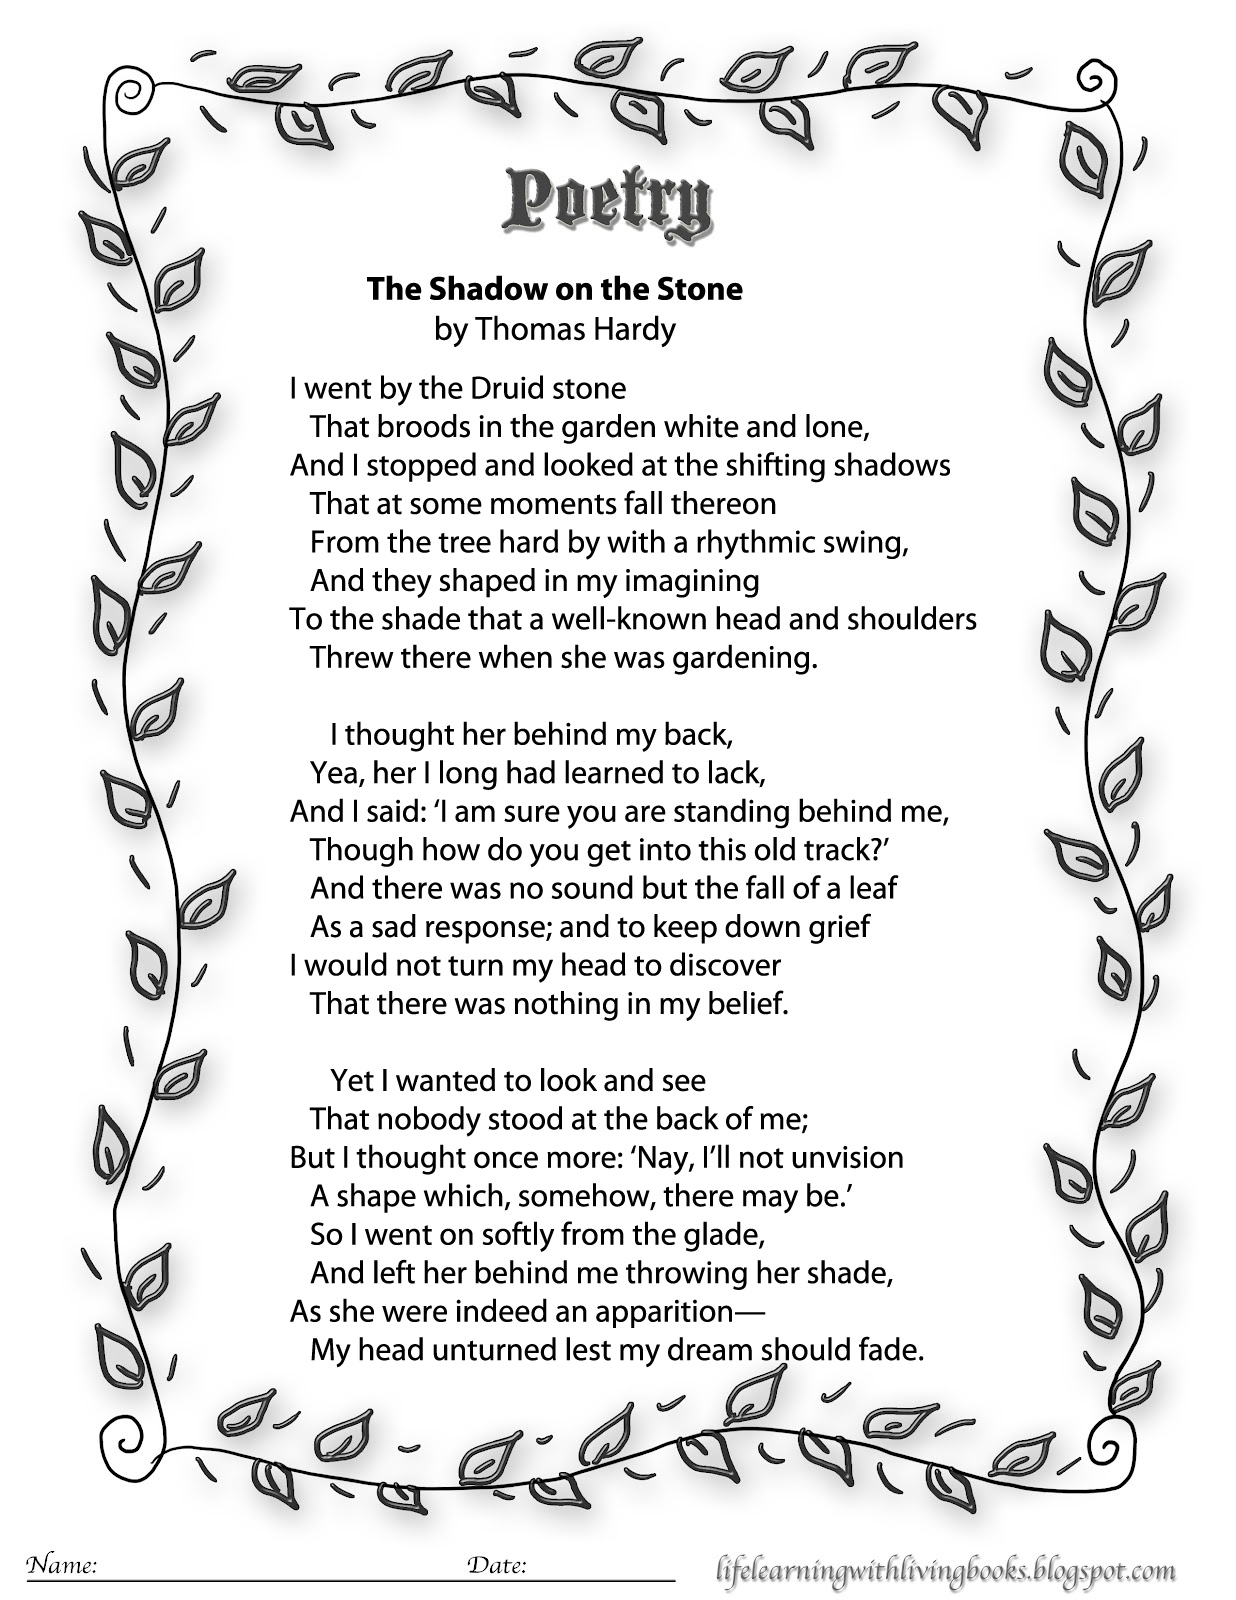 image regarding Keep a Poem in Your Pocket Printable named Printable youngsters Poems